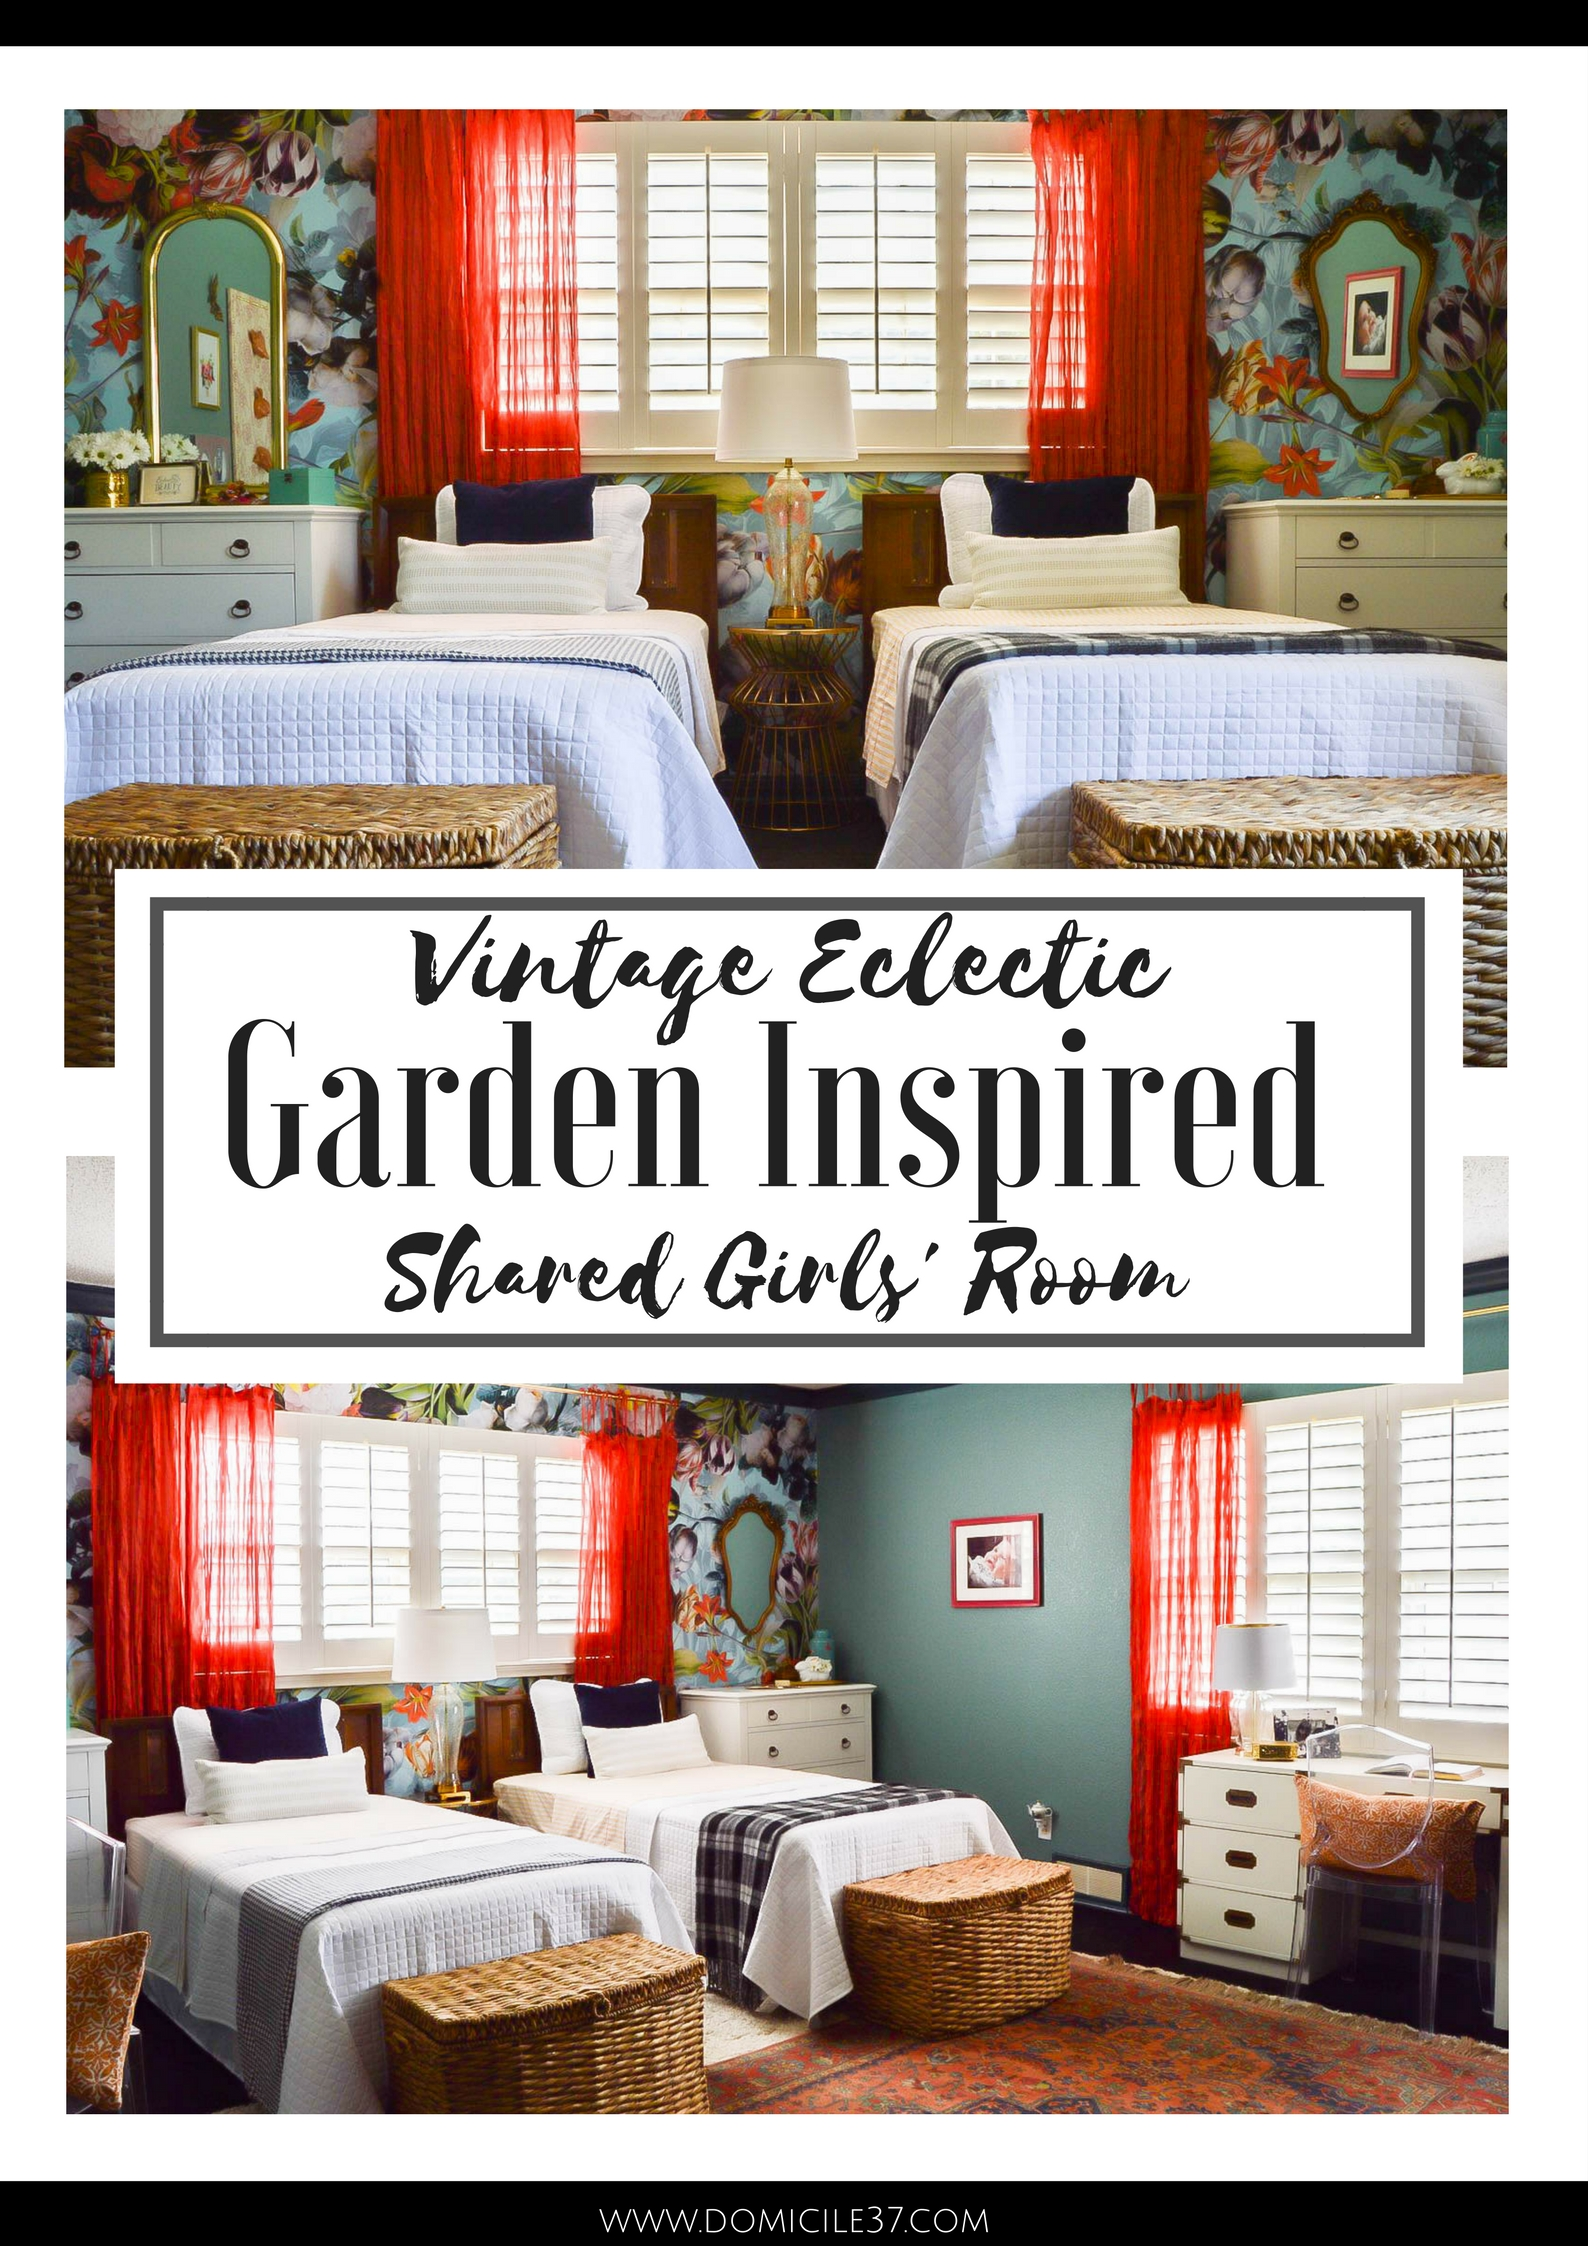 Shared girls' room | Bedroom ideas for little girls | Shared bedroom ideas | Vintage eclectic bedrooms | Garden inspired bedroom ideas | Wallpaper in kids bedroom | floral wallpaper in kids room | girls' bedroom idea| Matching twin beds | Mixing and Matching in shared bedroom